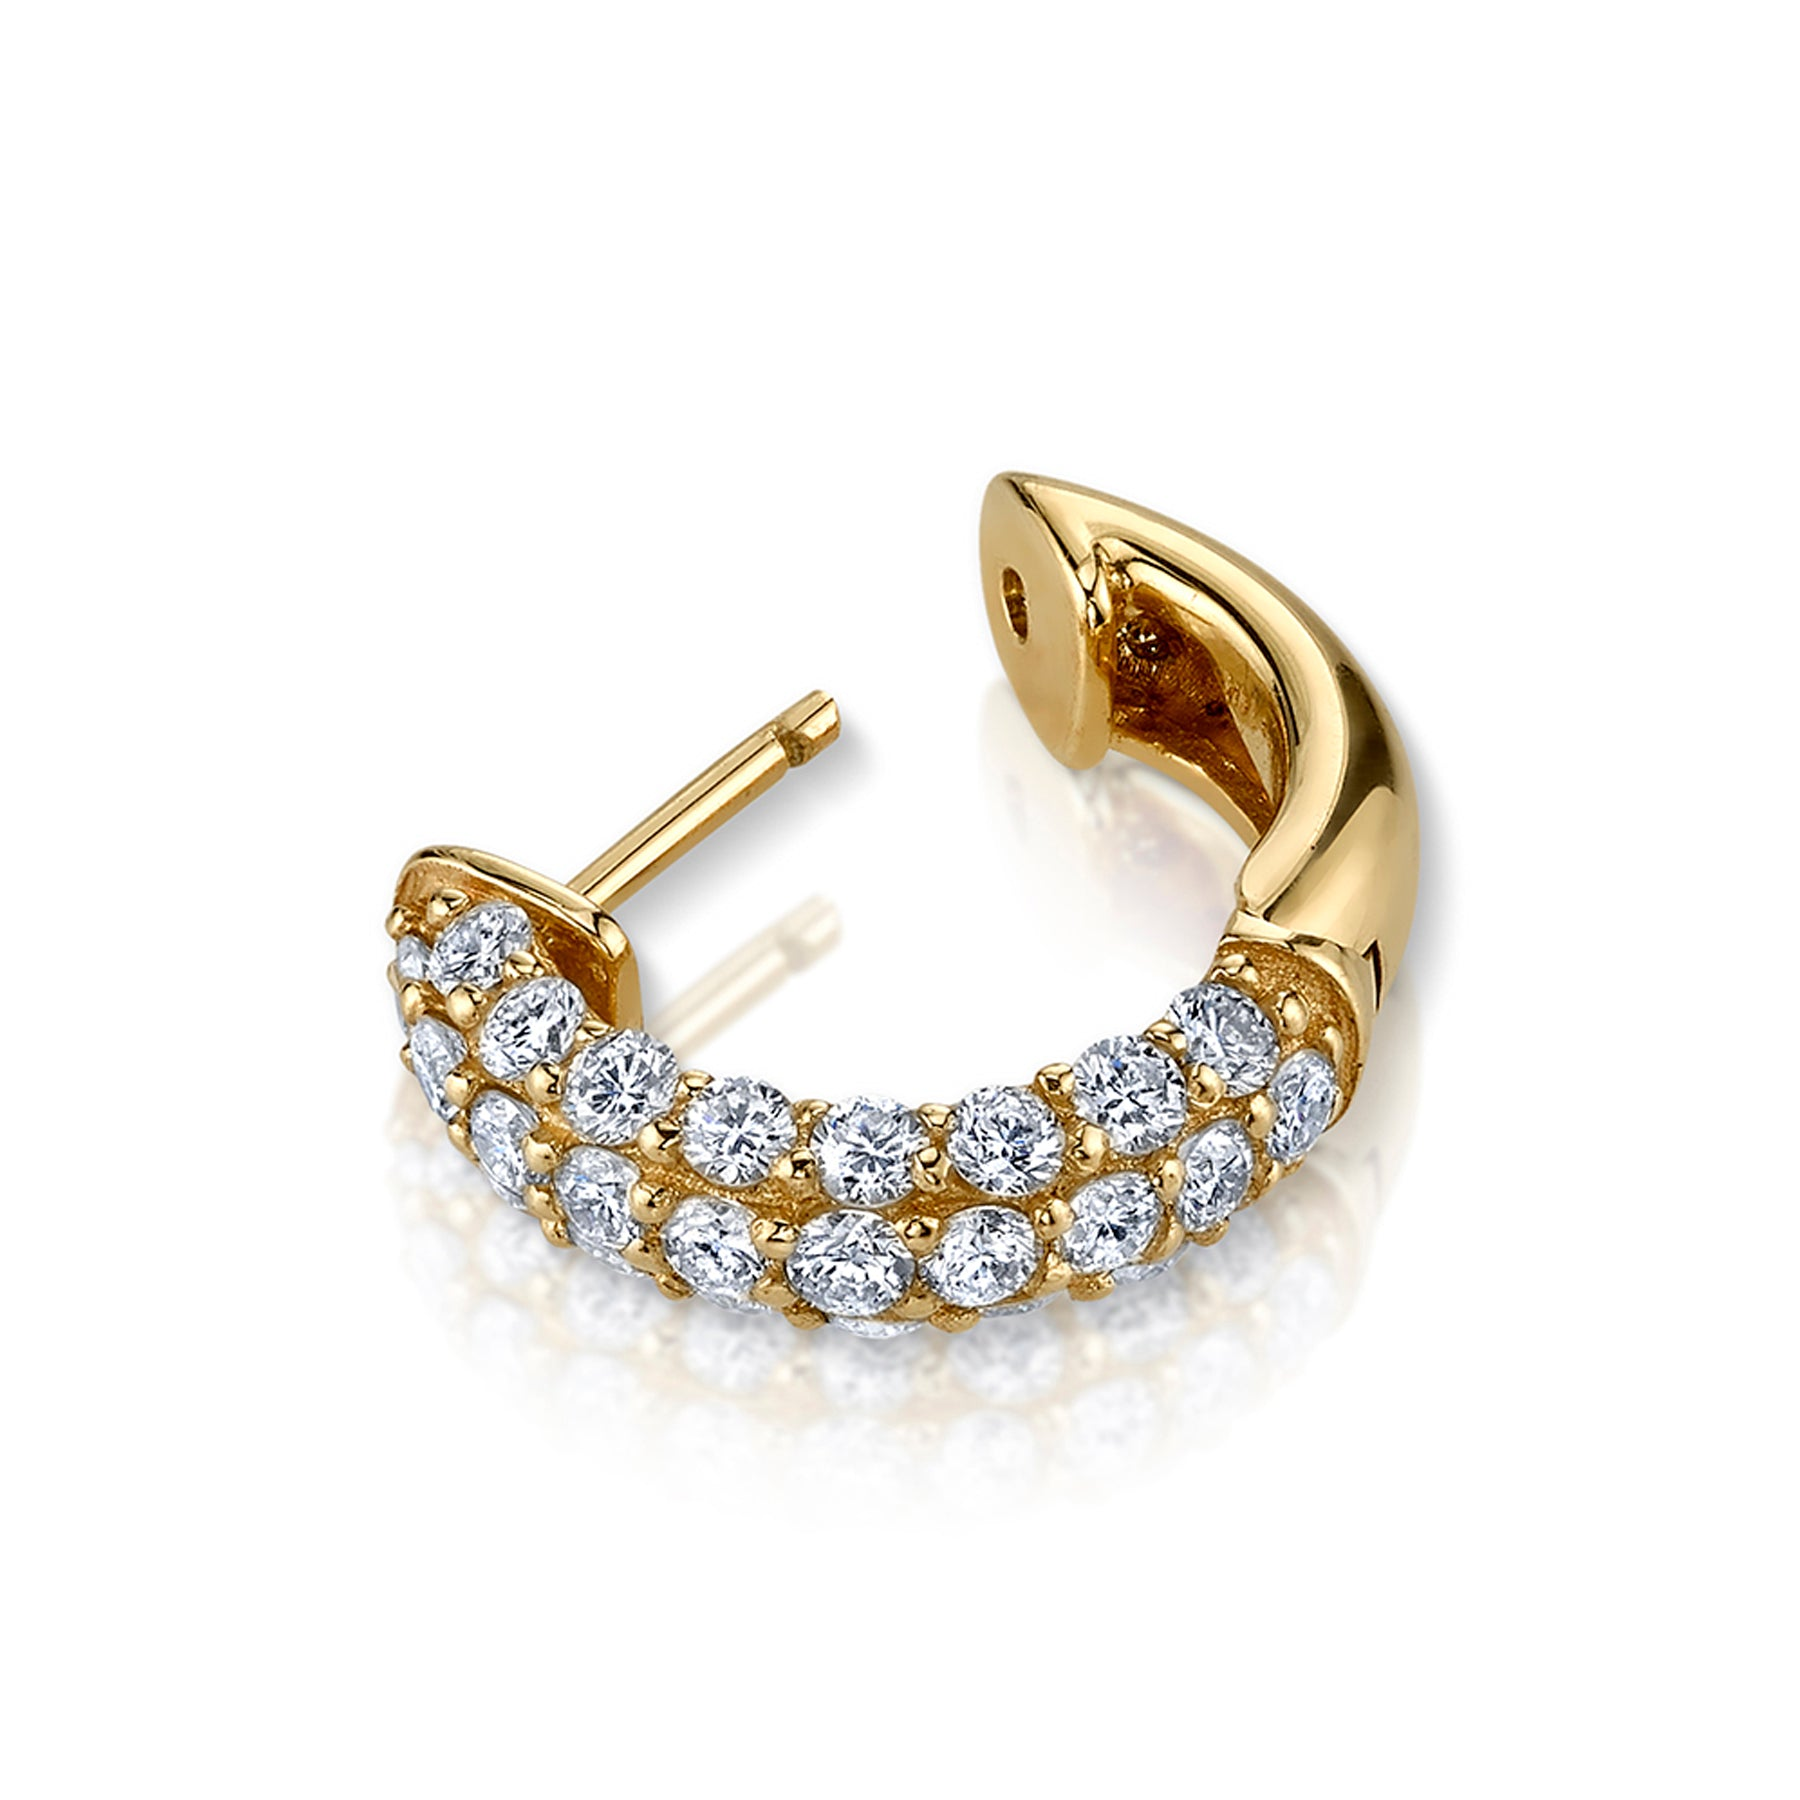 DIAMOND PAVE WIDE HOOP EARRING